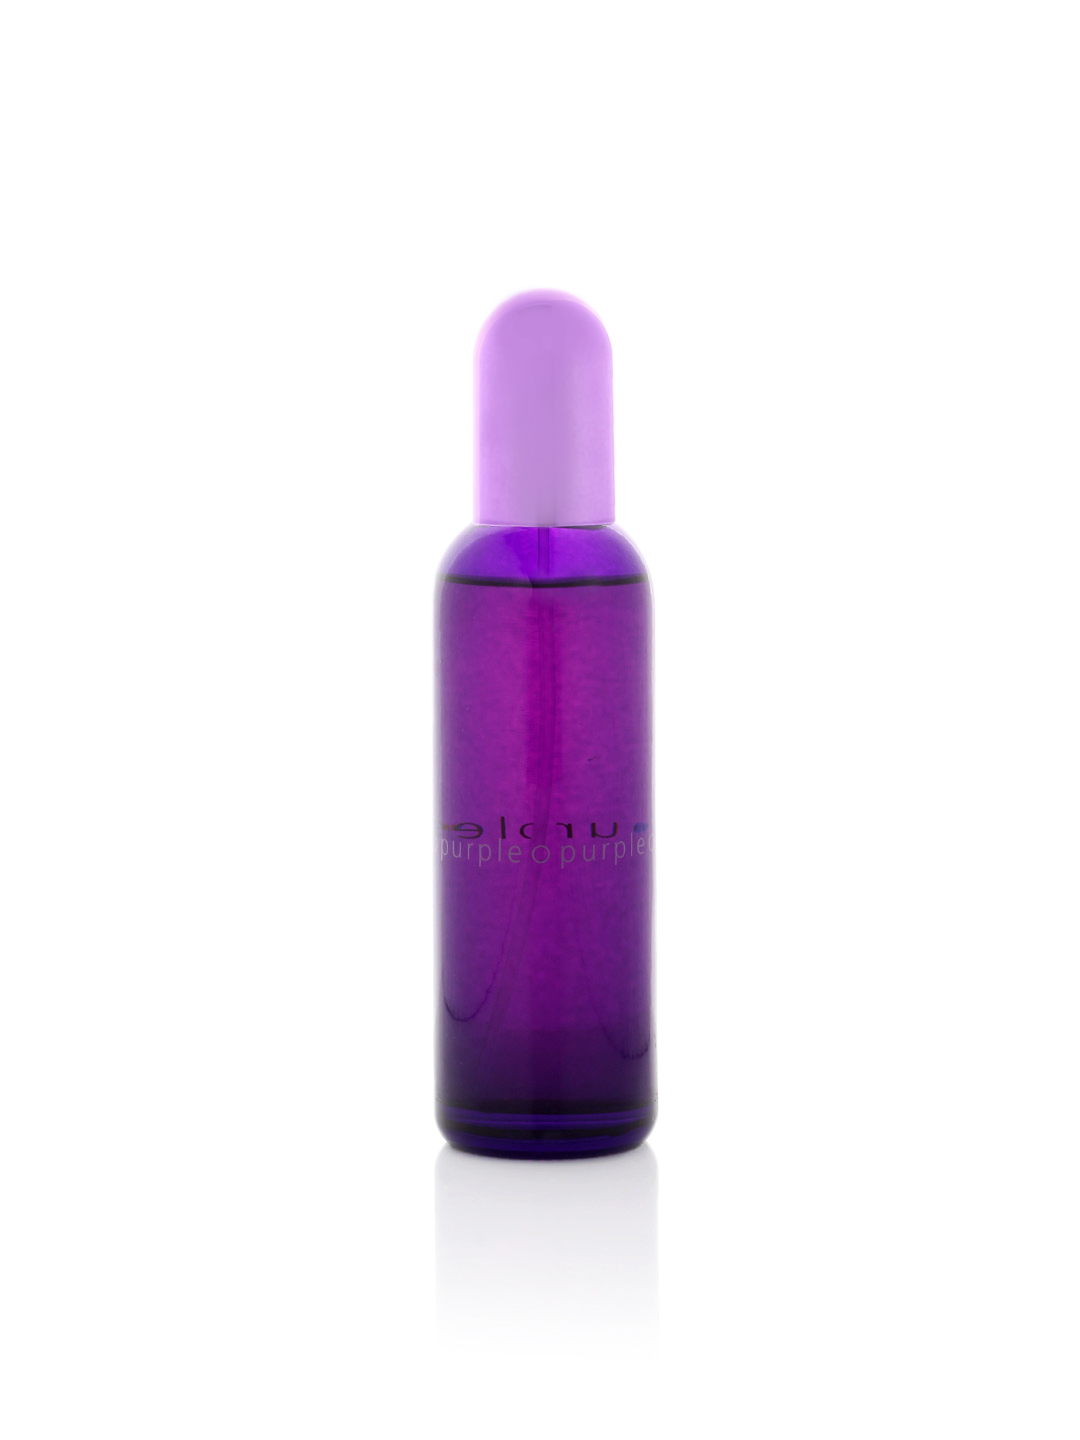 Colour Me Women Purple Perfume